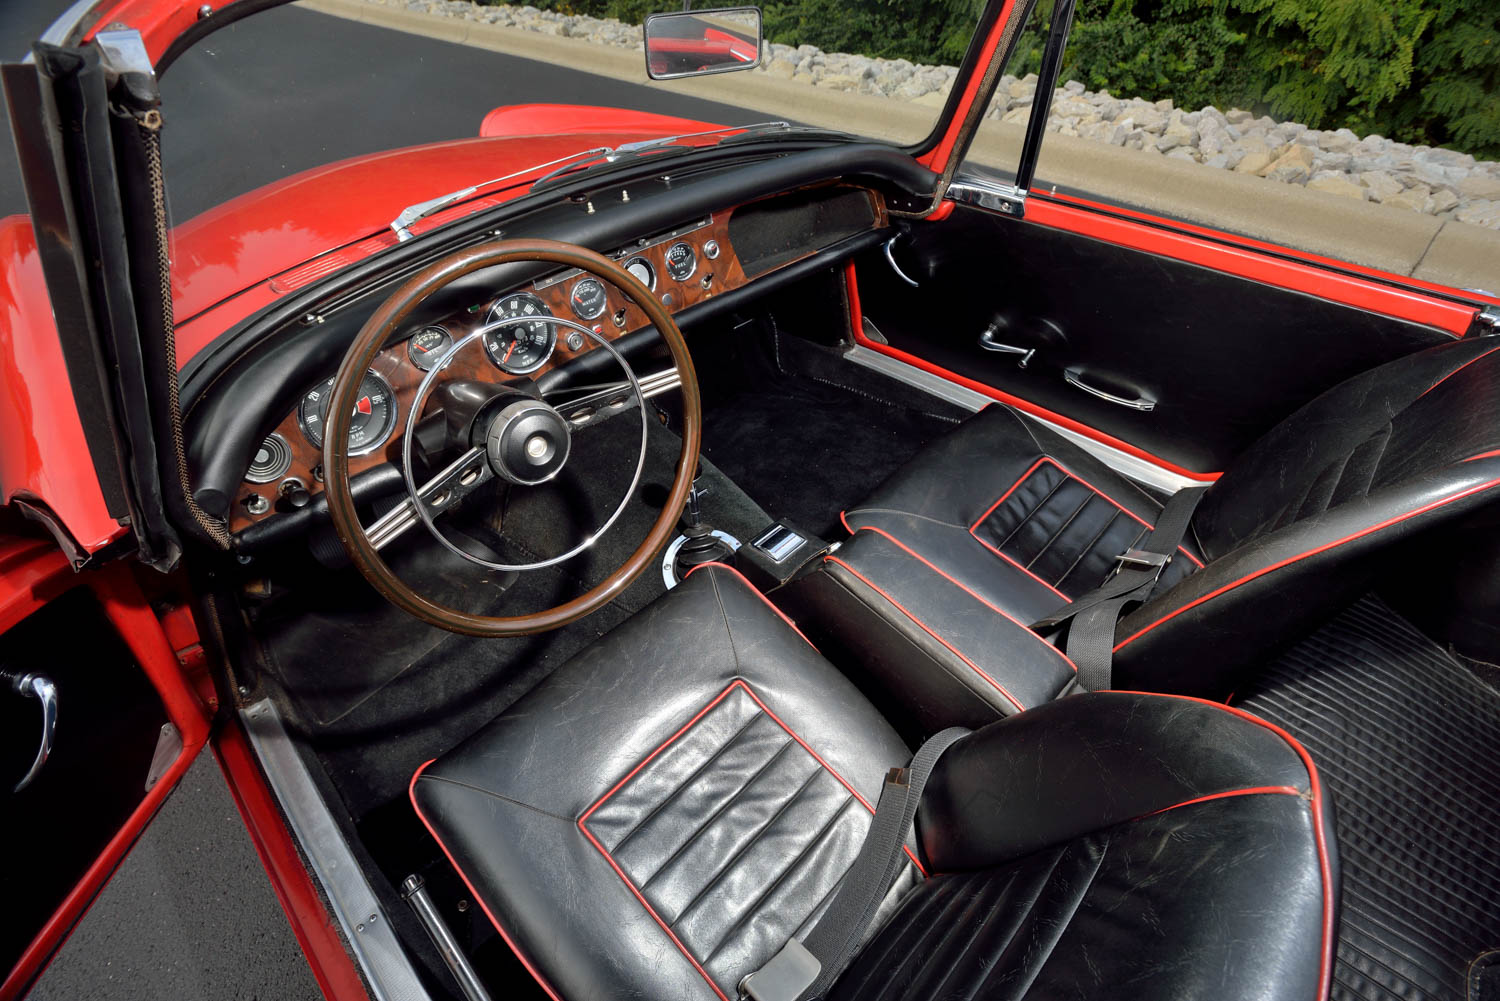 1965 Sunbeam Tiger MKI interior